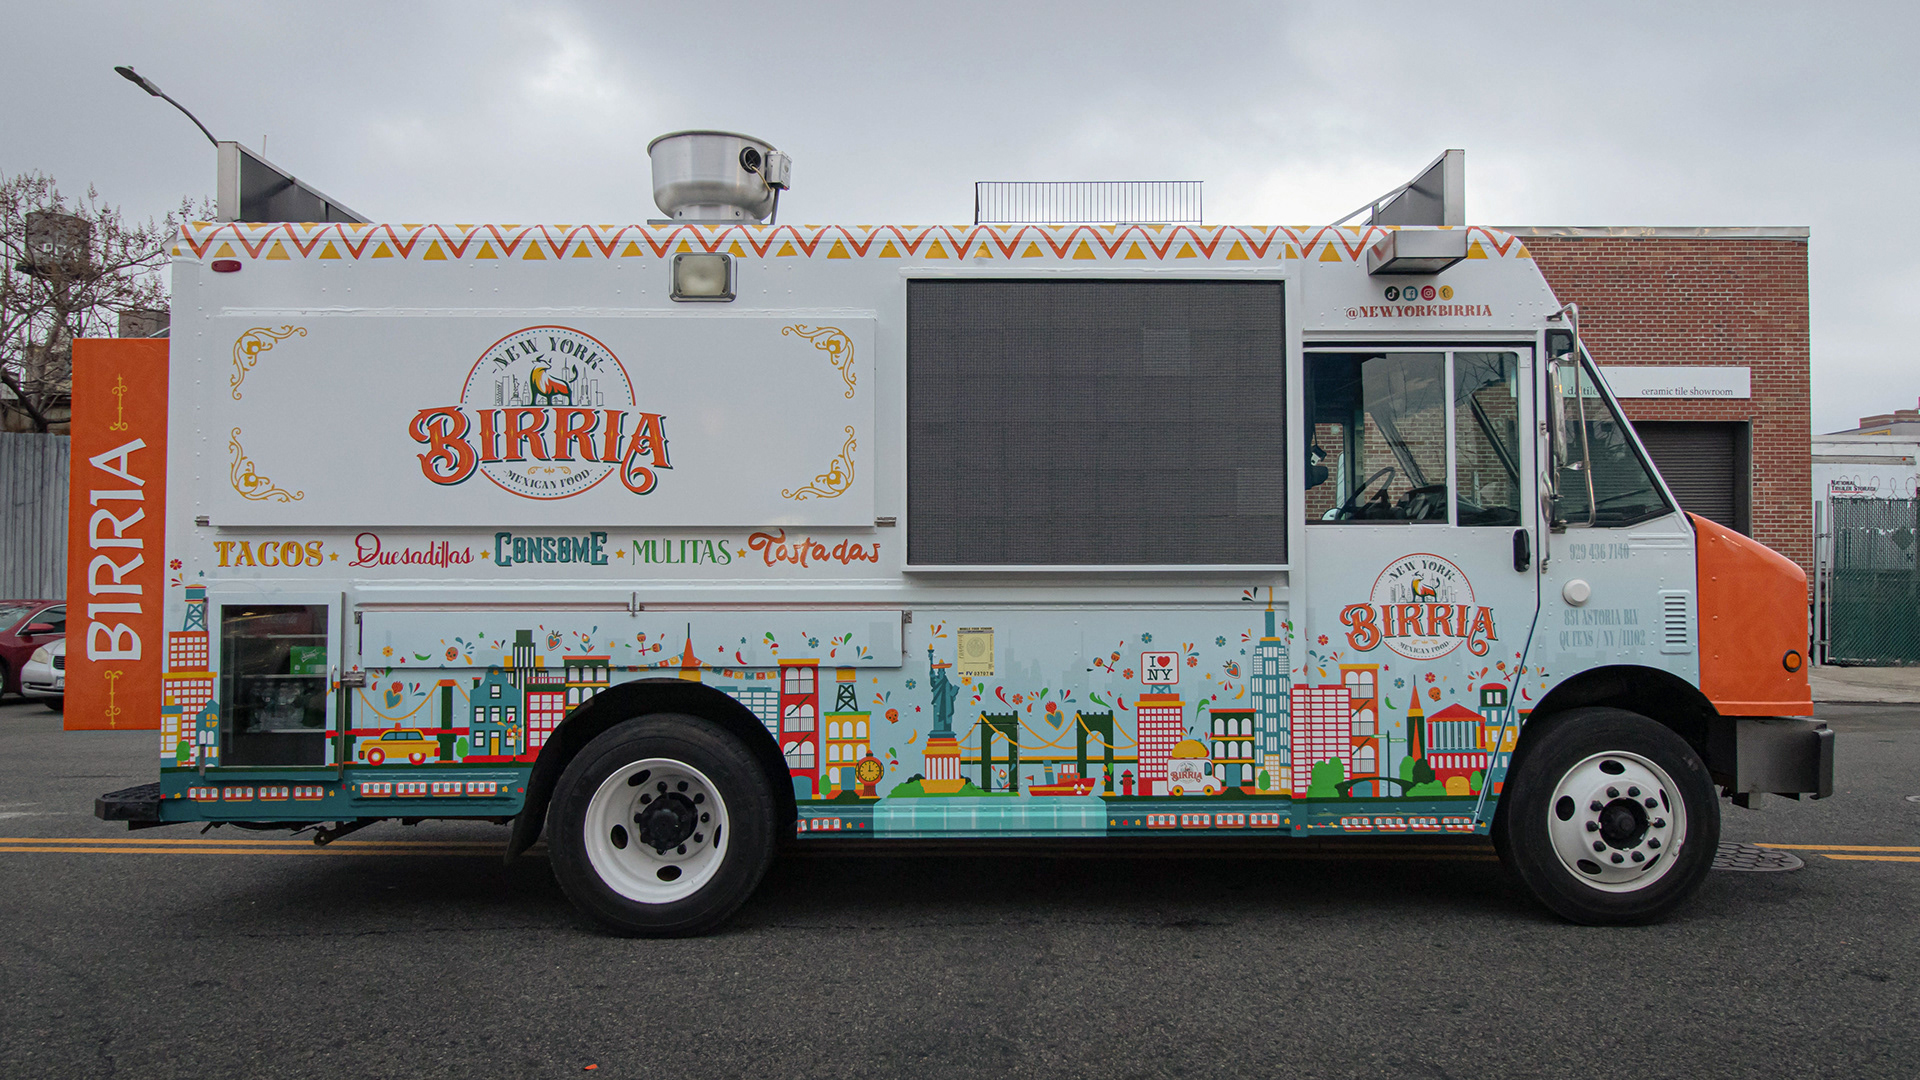 New York Birria Branding & Food Truck Design